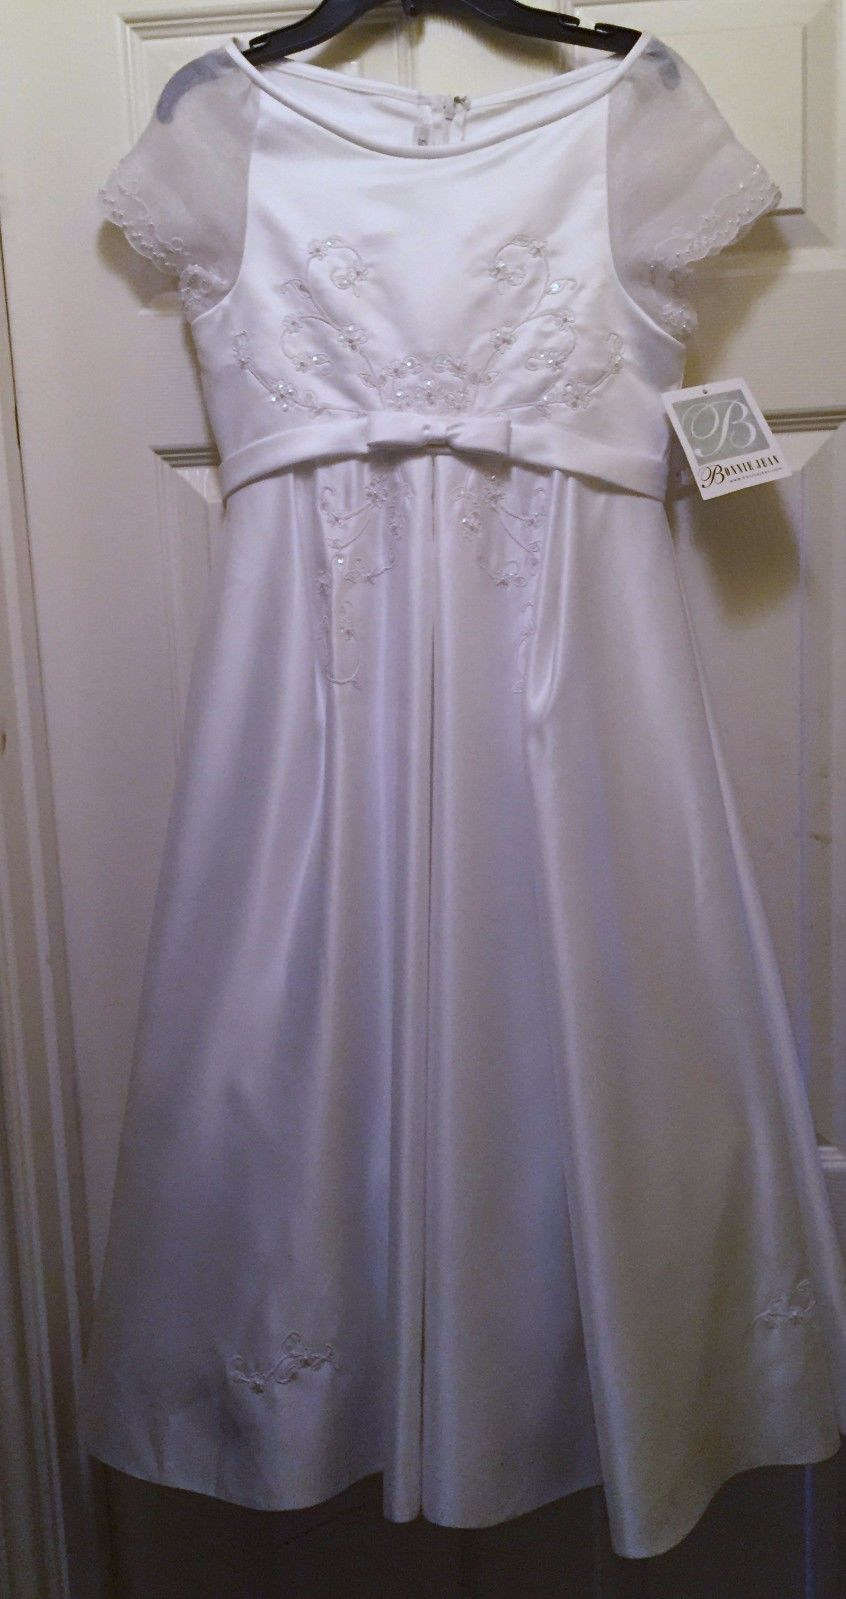 Size girls white sequined dress occasions communion wedding